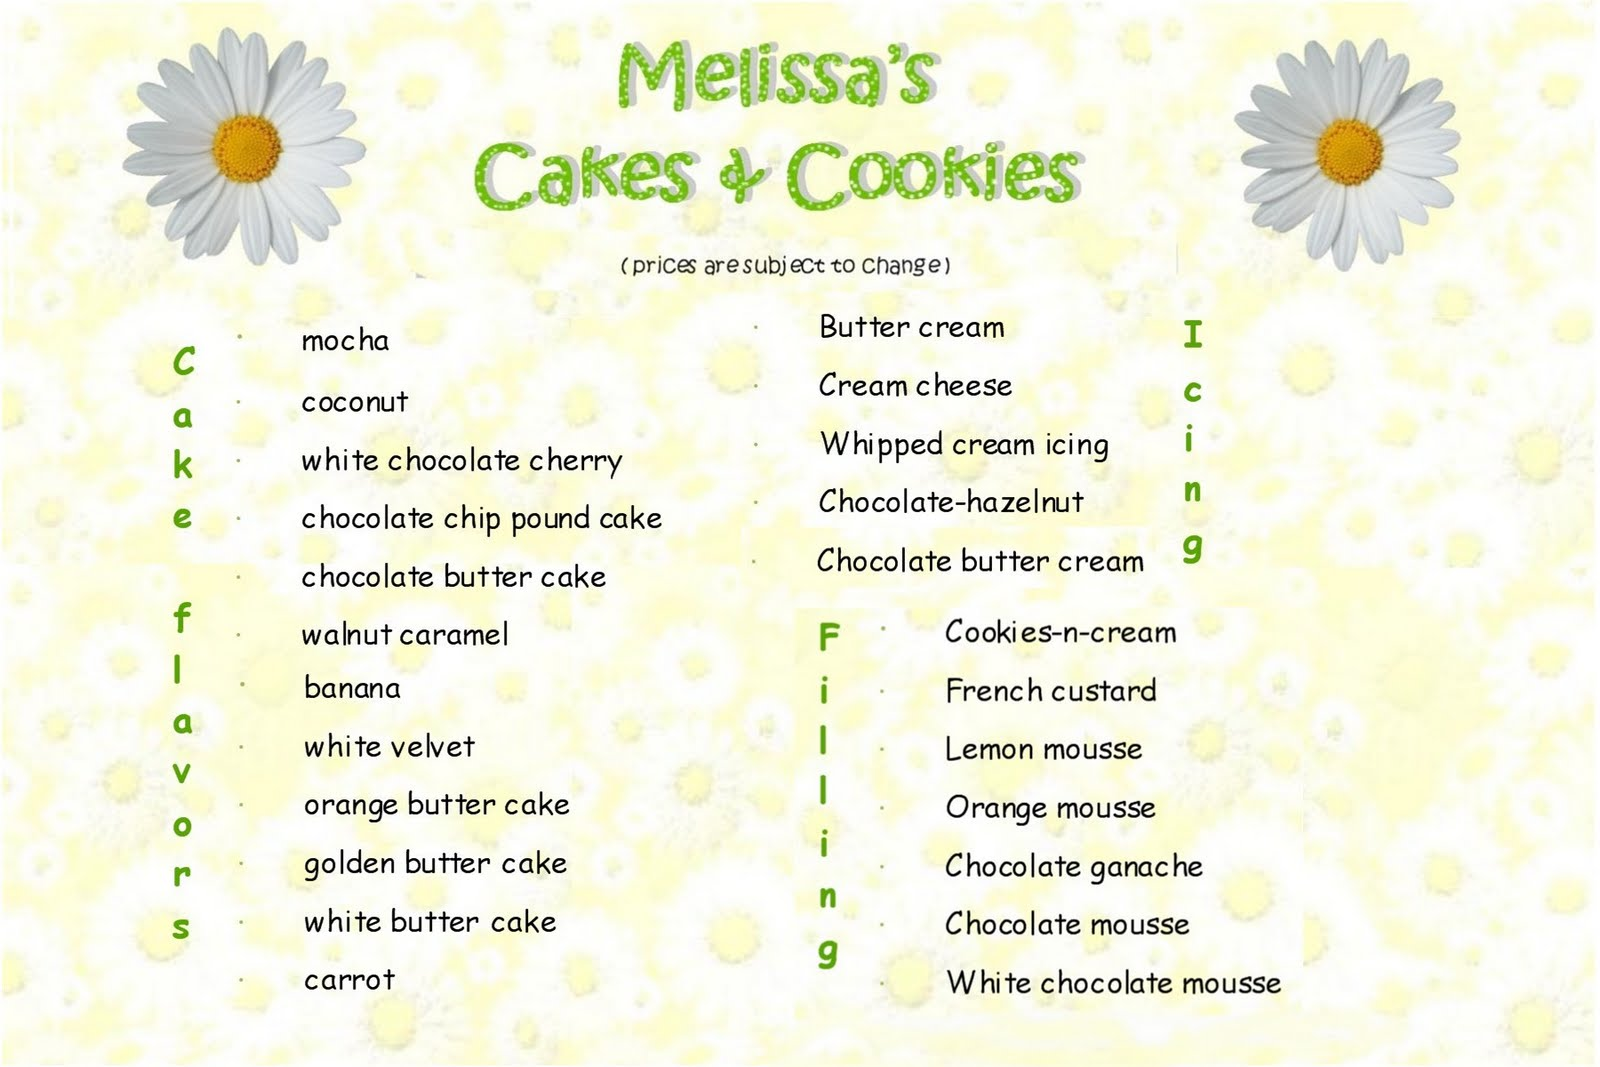 Melissa\'s Cakes & Cookies: MENU and PRICES